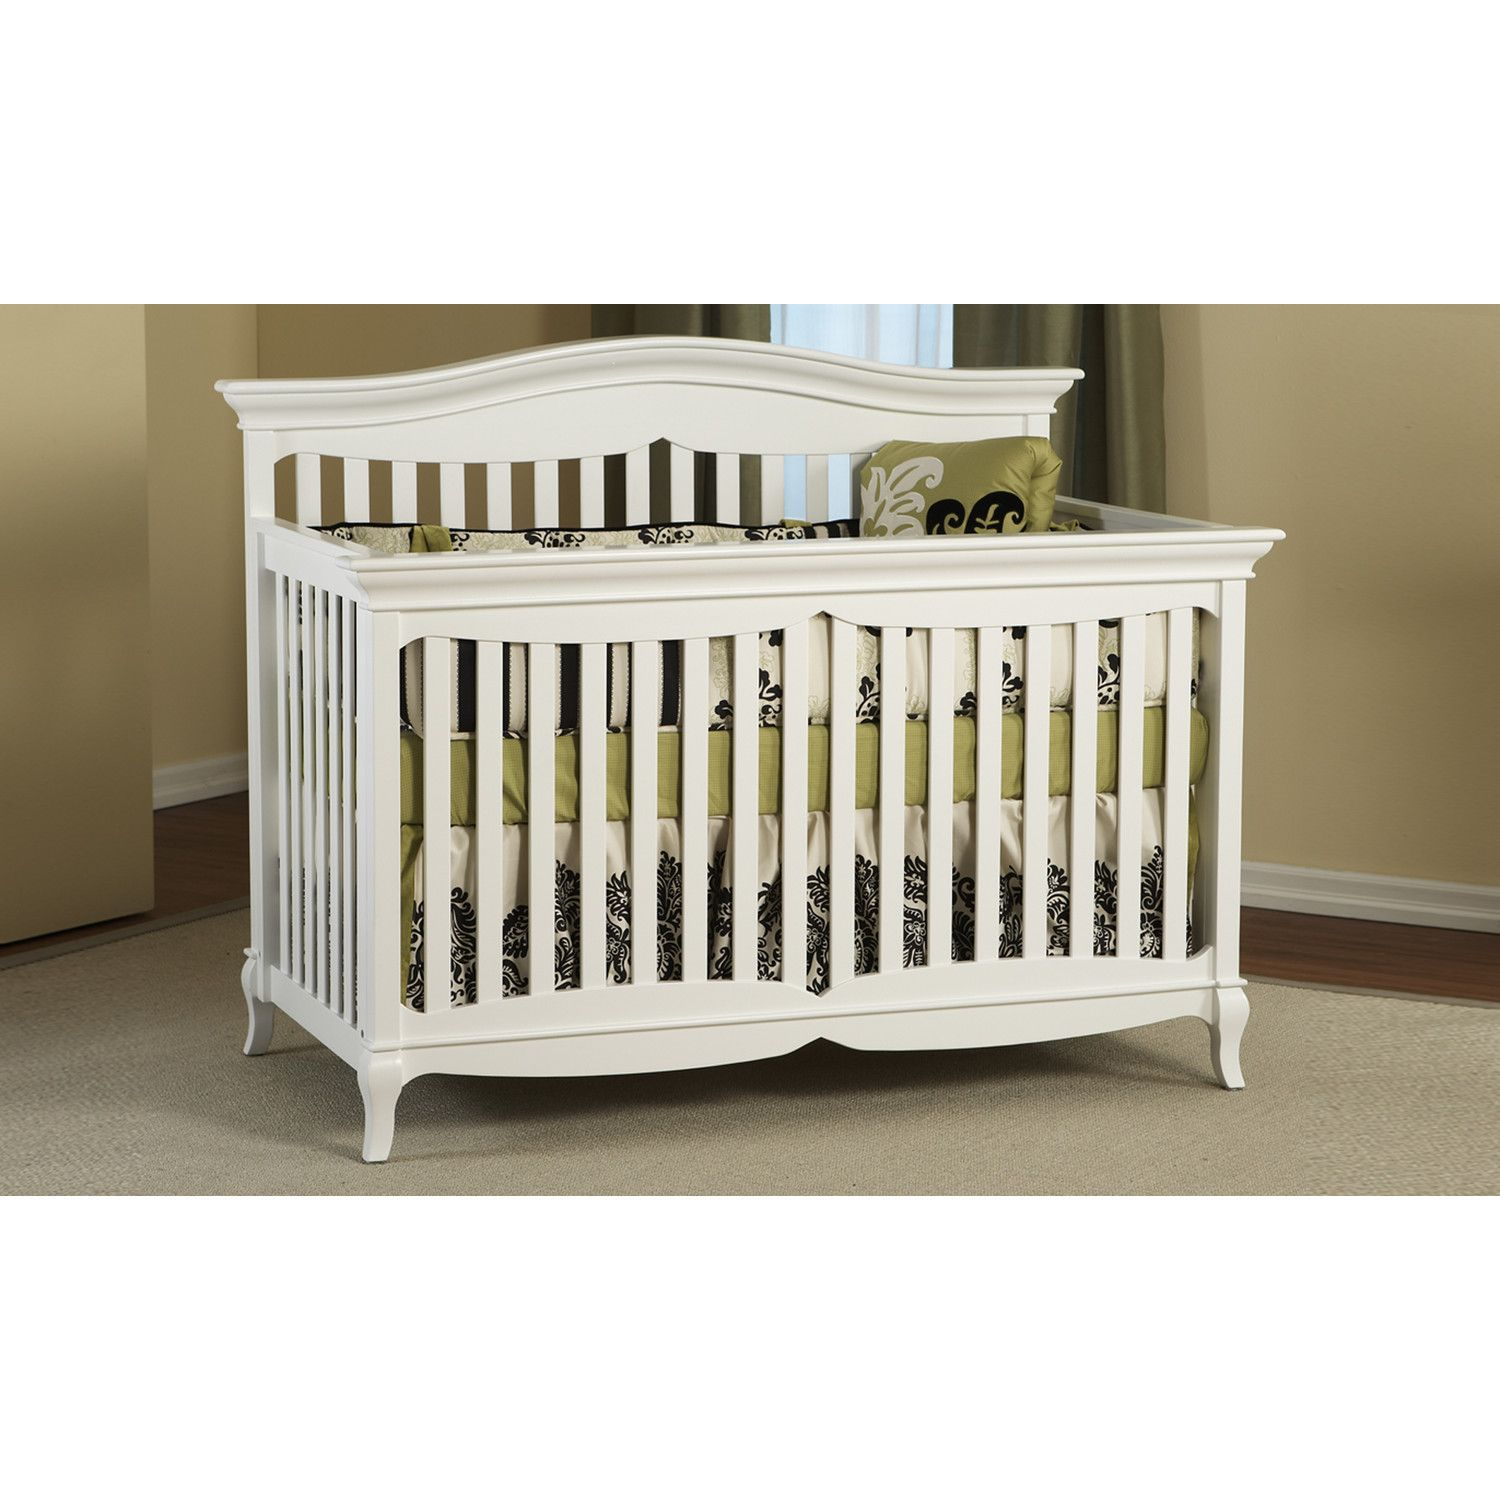 PALI Mantova 4-in-1 Convertible Crib (With Images)